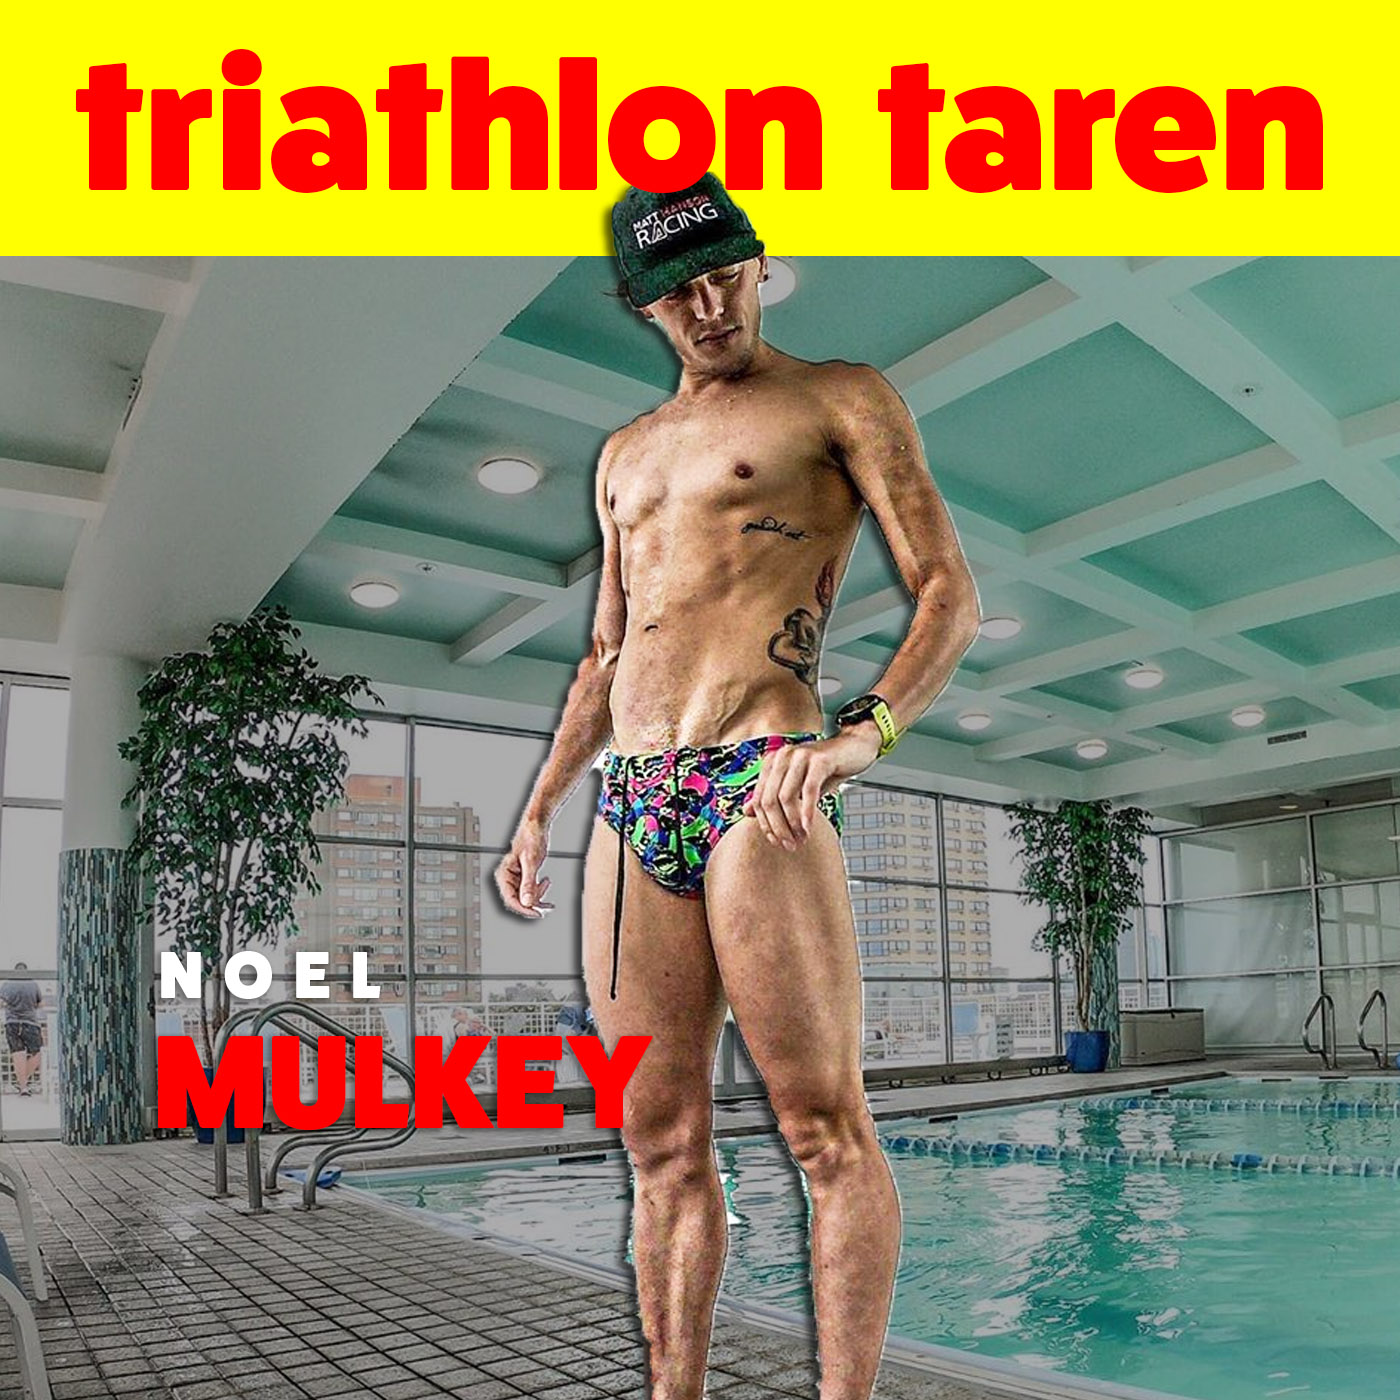 From Heroin User to World Championship Triathlete